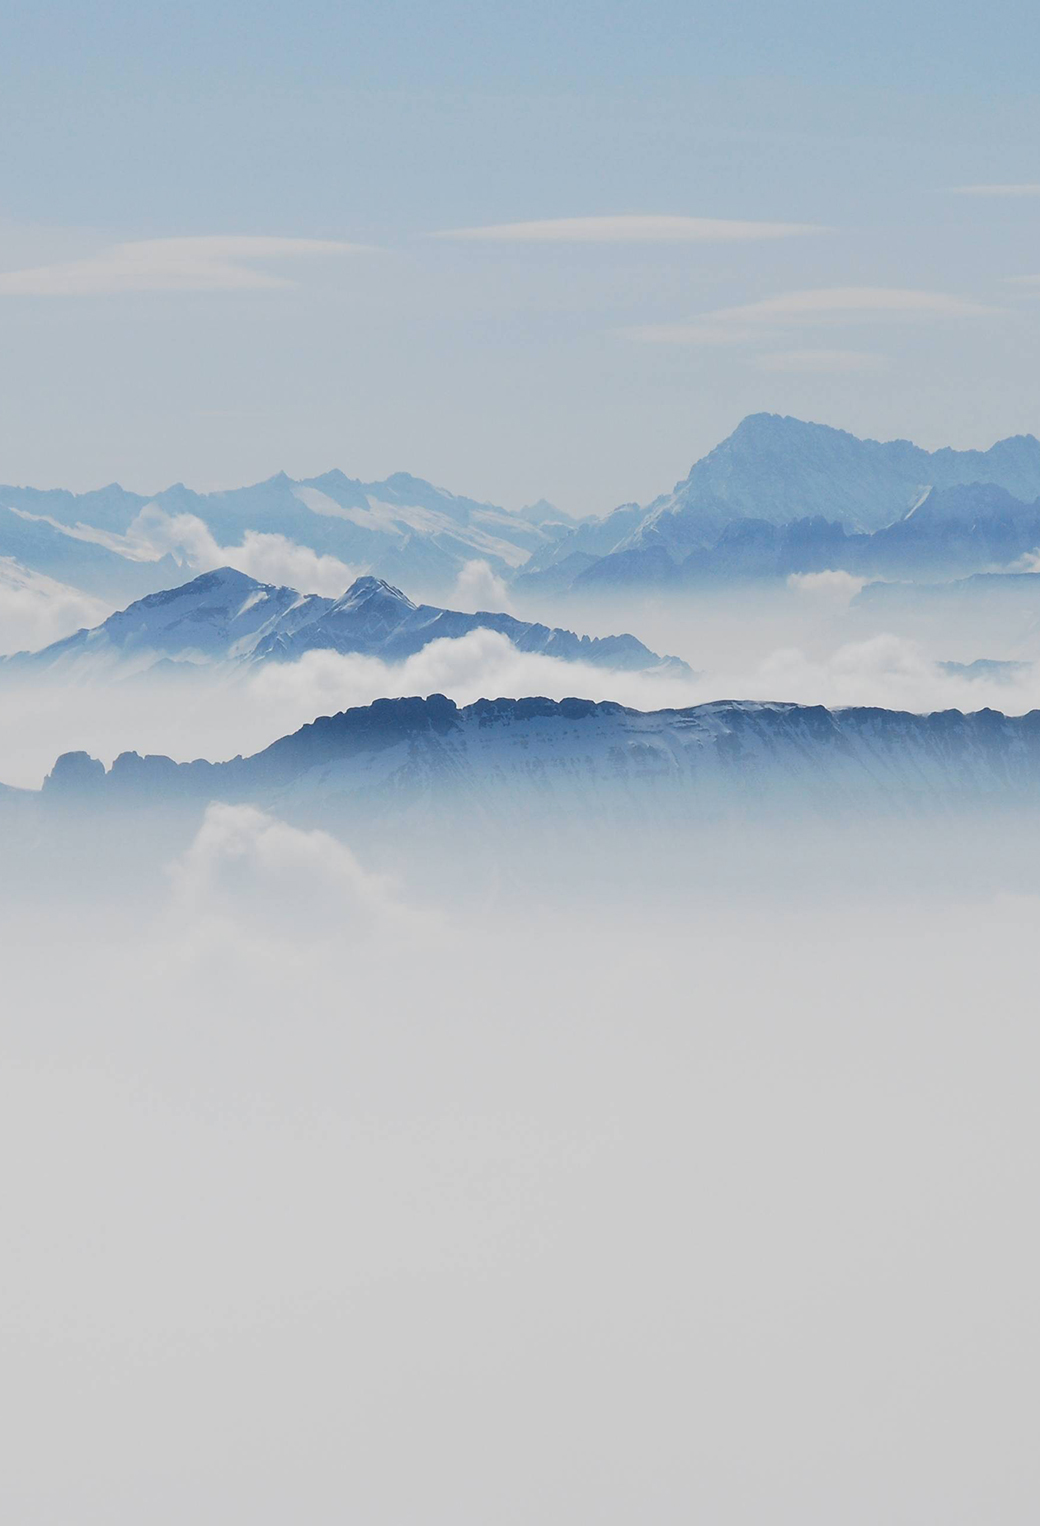 Montains Fog 3Wallpapers iphone Paralalx Mountains Fog